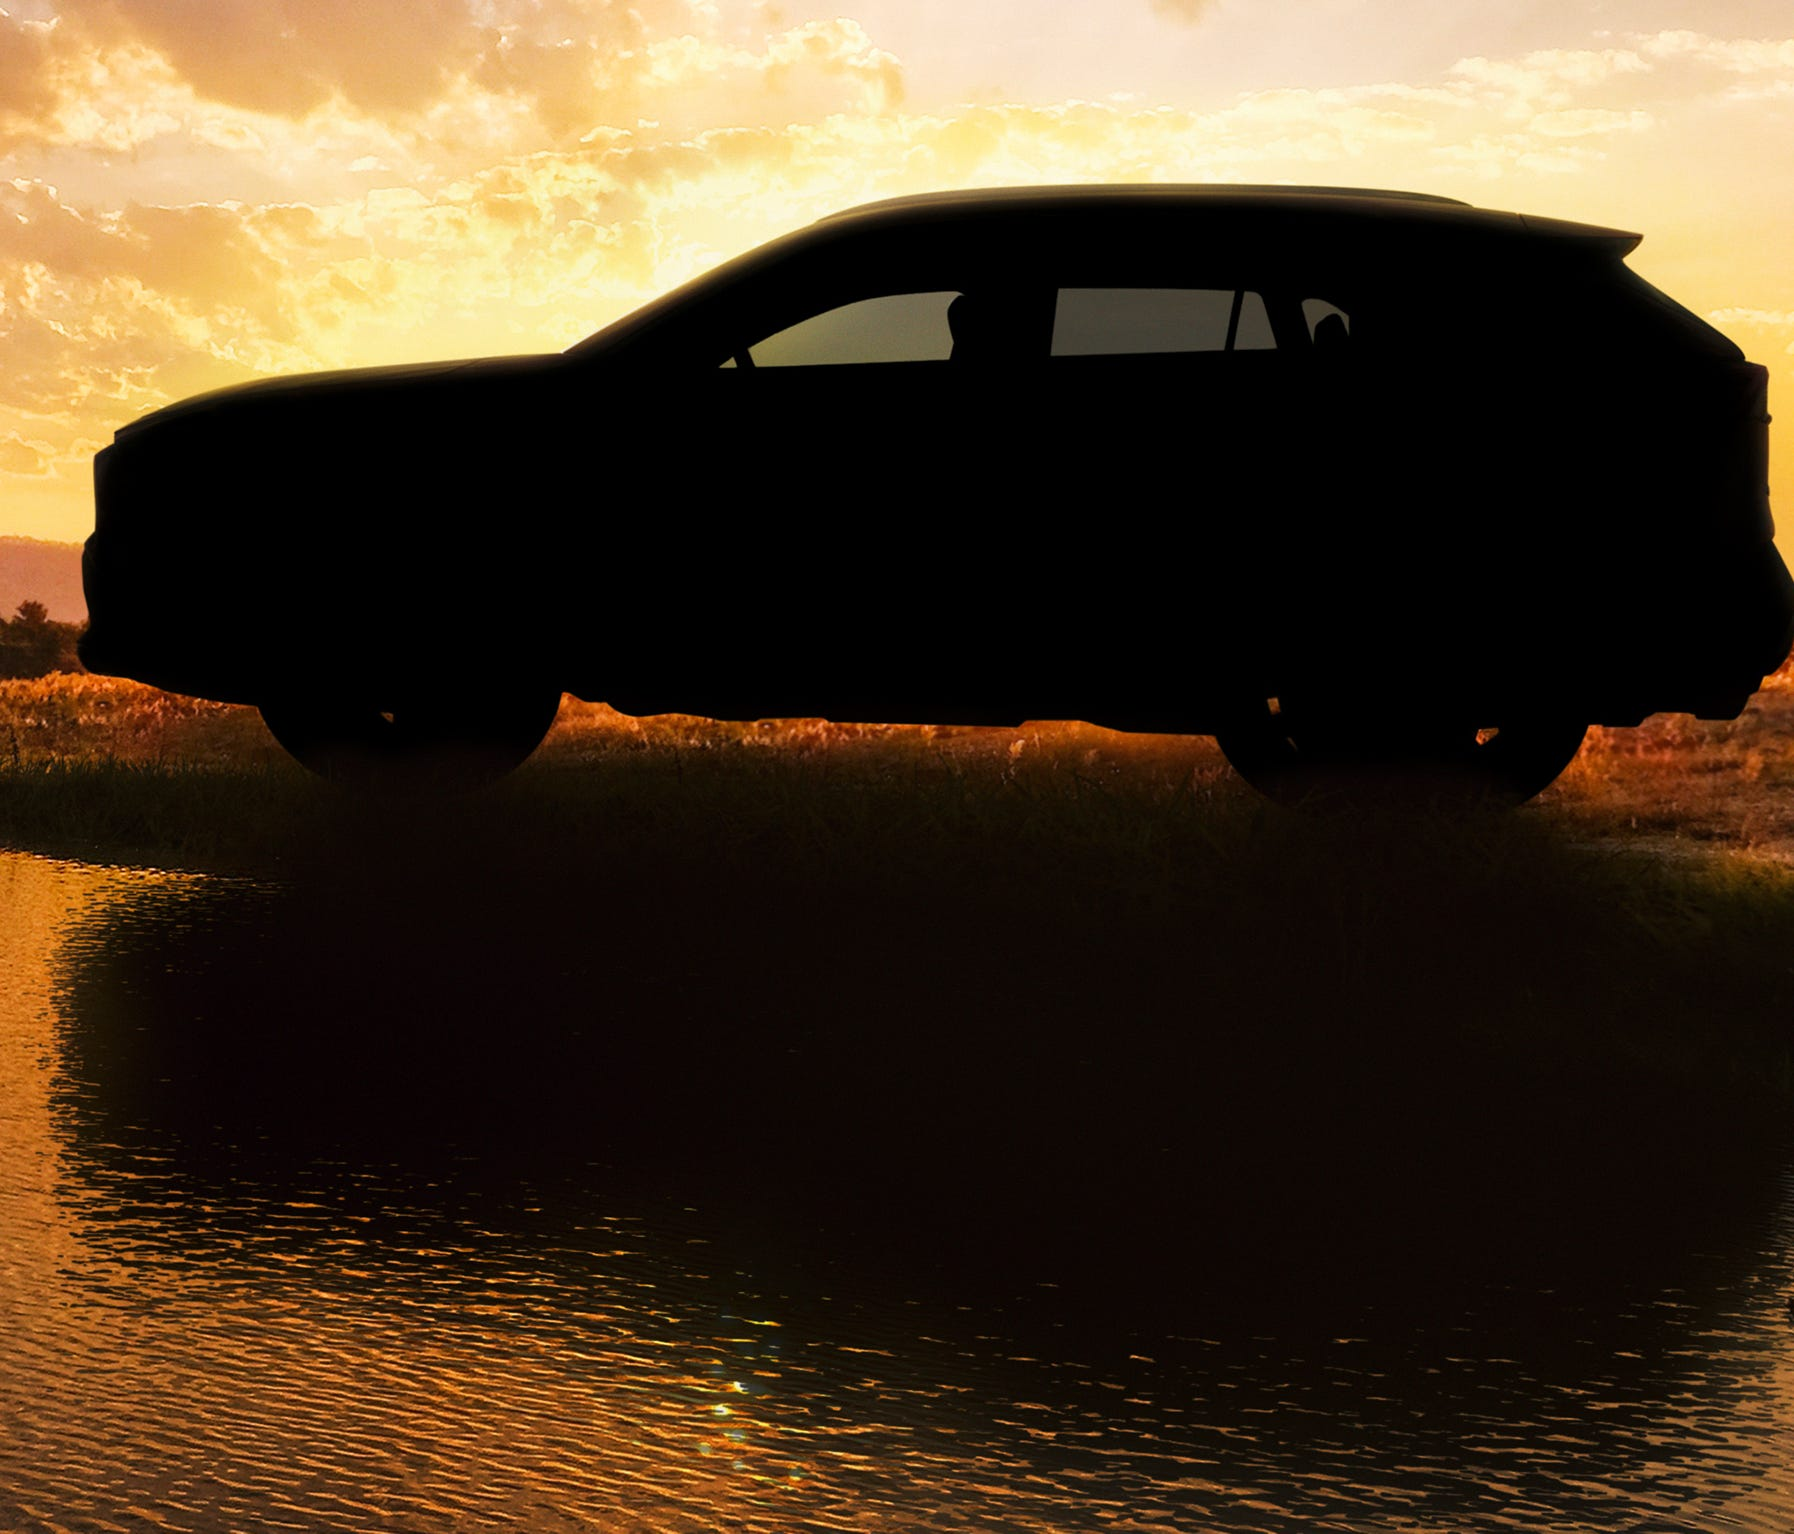 the new Toyota RAV4 is coming to the New York Auto Show